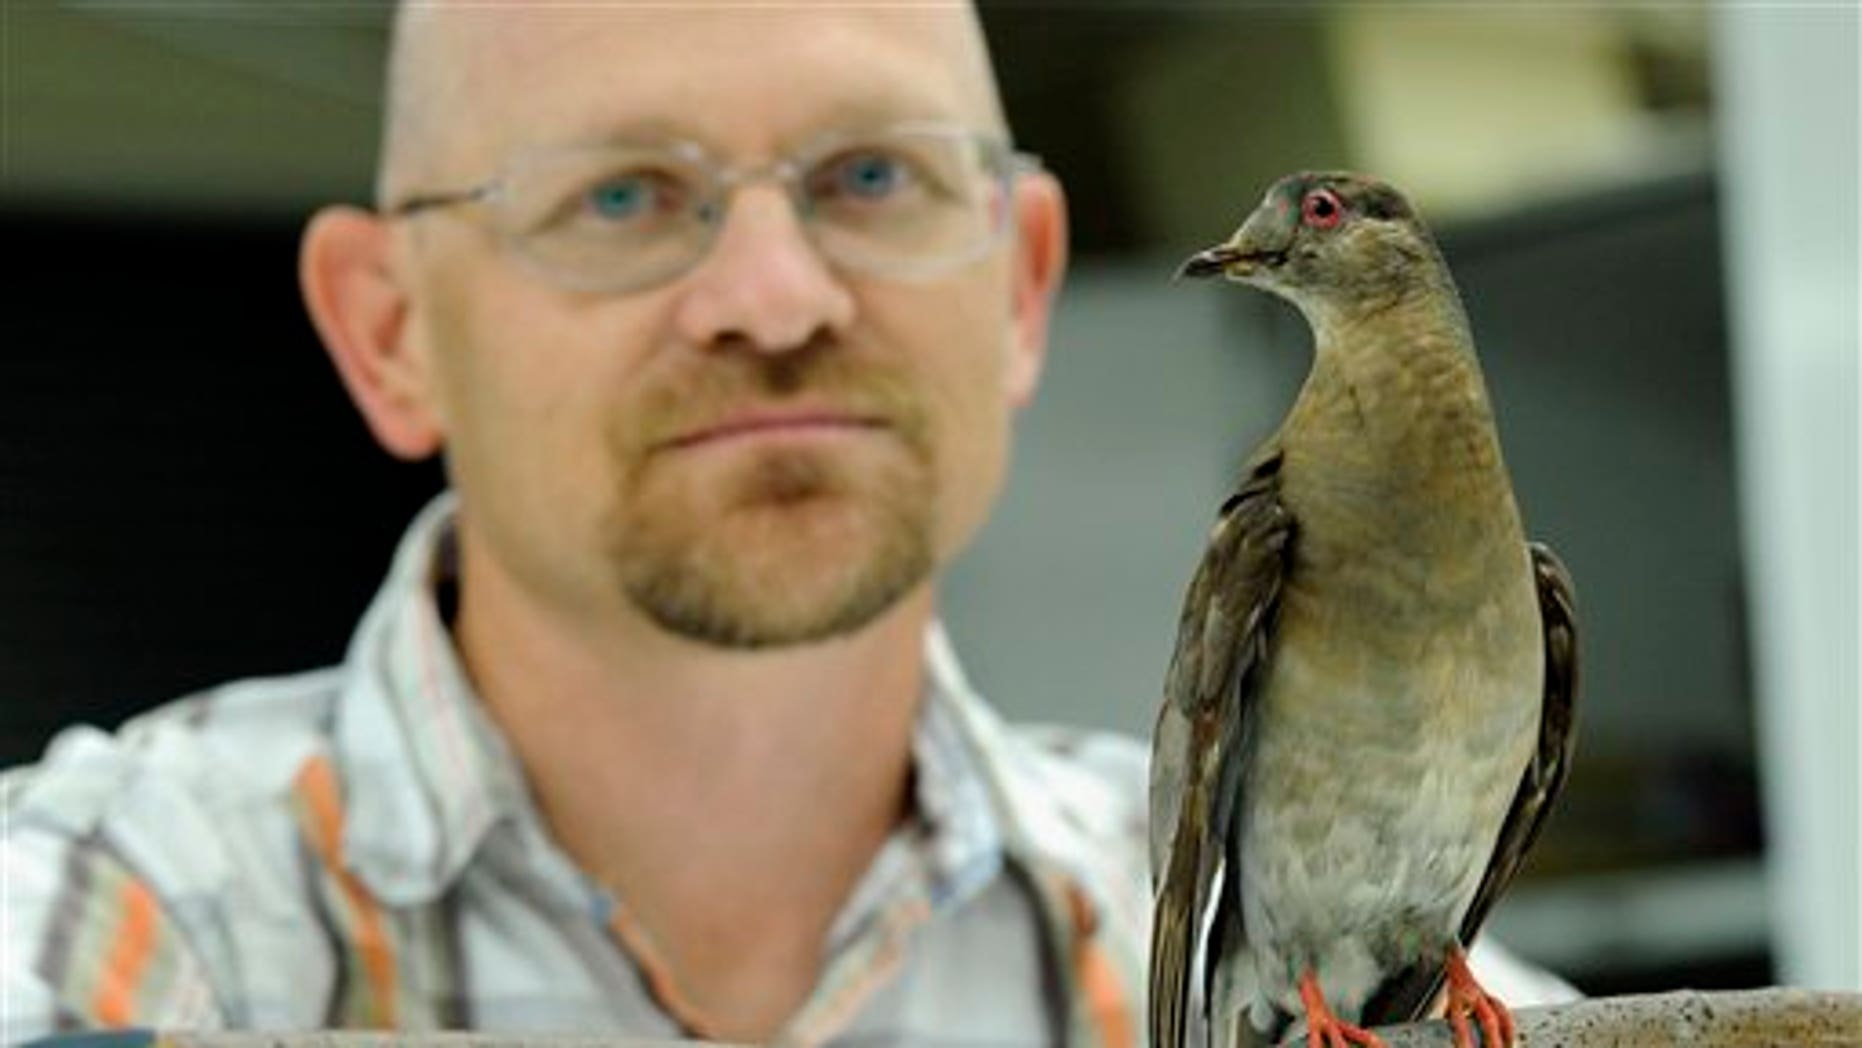 Smithsonian ornithologist Brian Schmidt posing for a photo with Martha, an extinct passenger pigeon, once the most plentiful bird on the planet, who went extinct in September 1914.